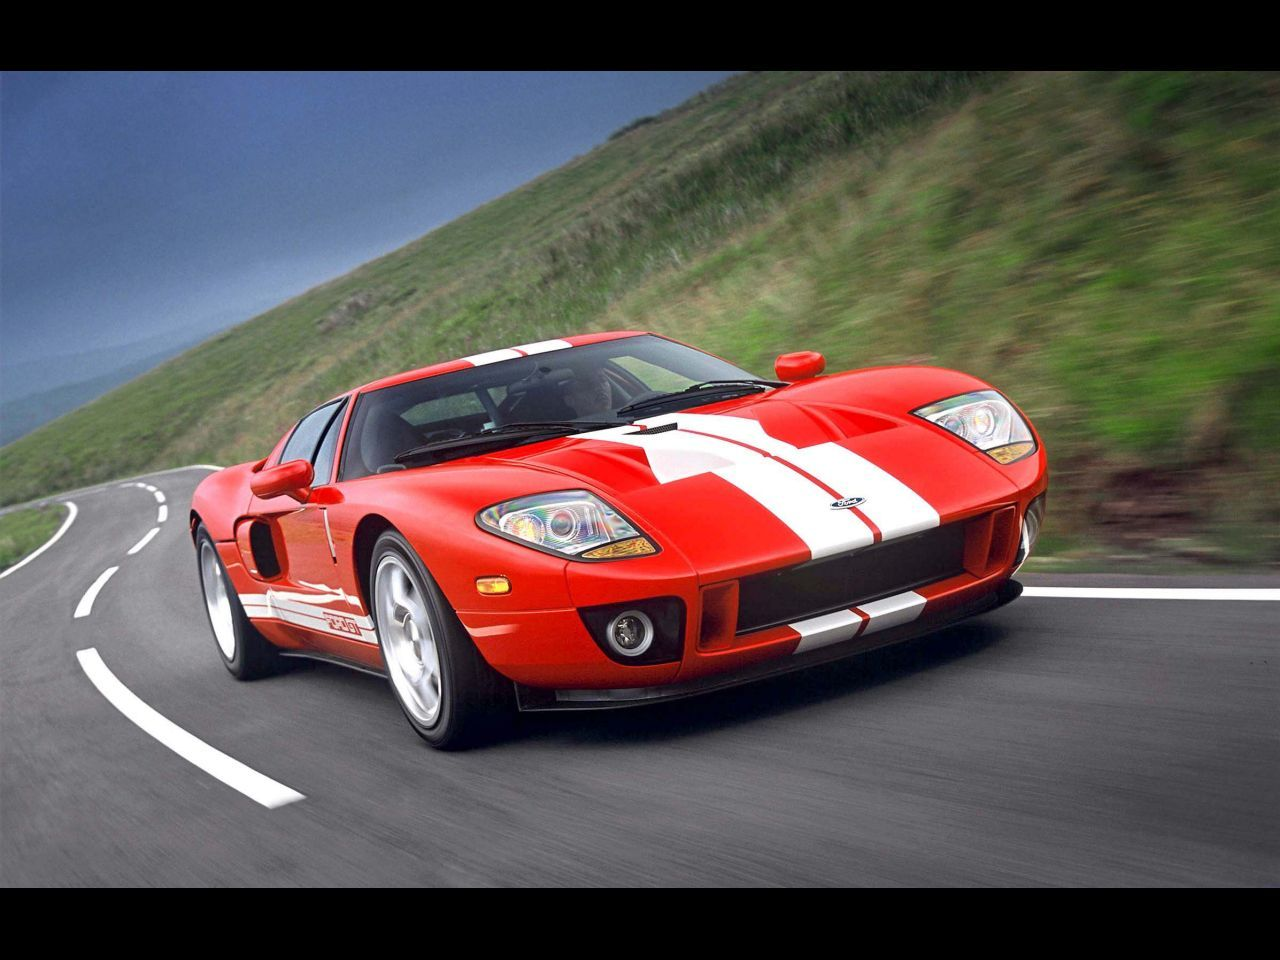 Http Www Supercarstats Com Cars Ford Gt 9 Full Jpg Ford Gt Sports Car Good Looking Cars